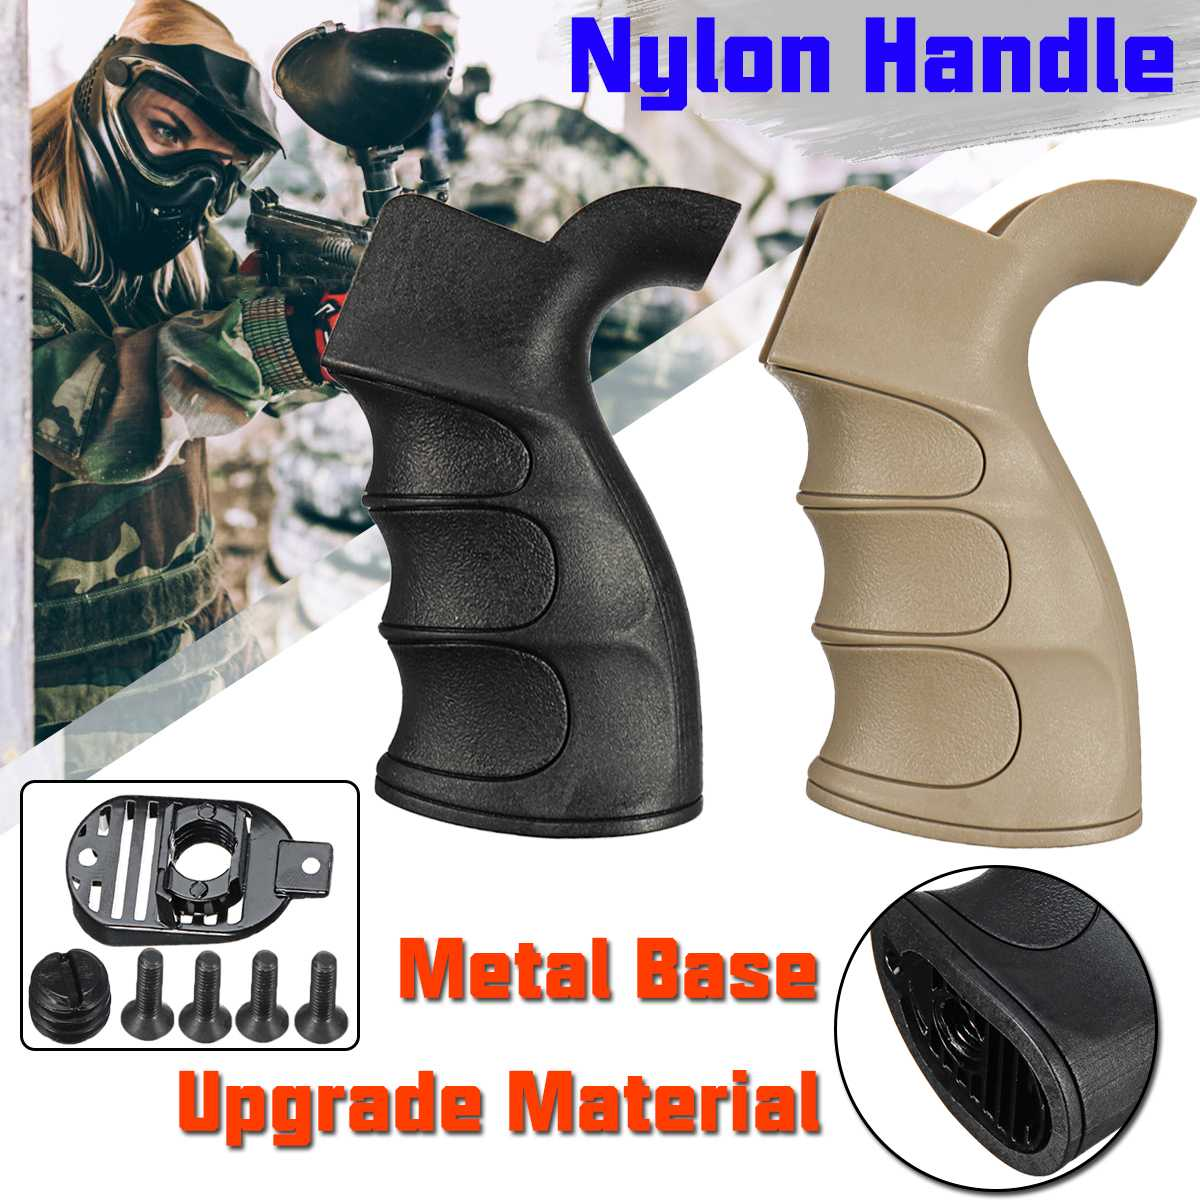 Nylon Handle Metal Base For JinMing 9 M4A1/ TTM/AEG/NWELL M4/BD556/G27 Water Gel Ball Blasters Toy Guns Replacement Accessories